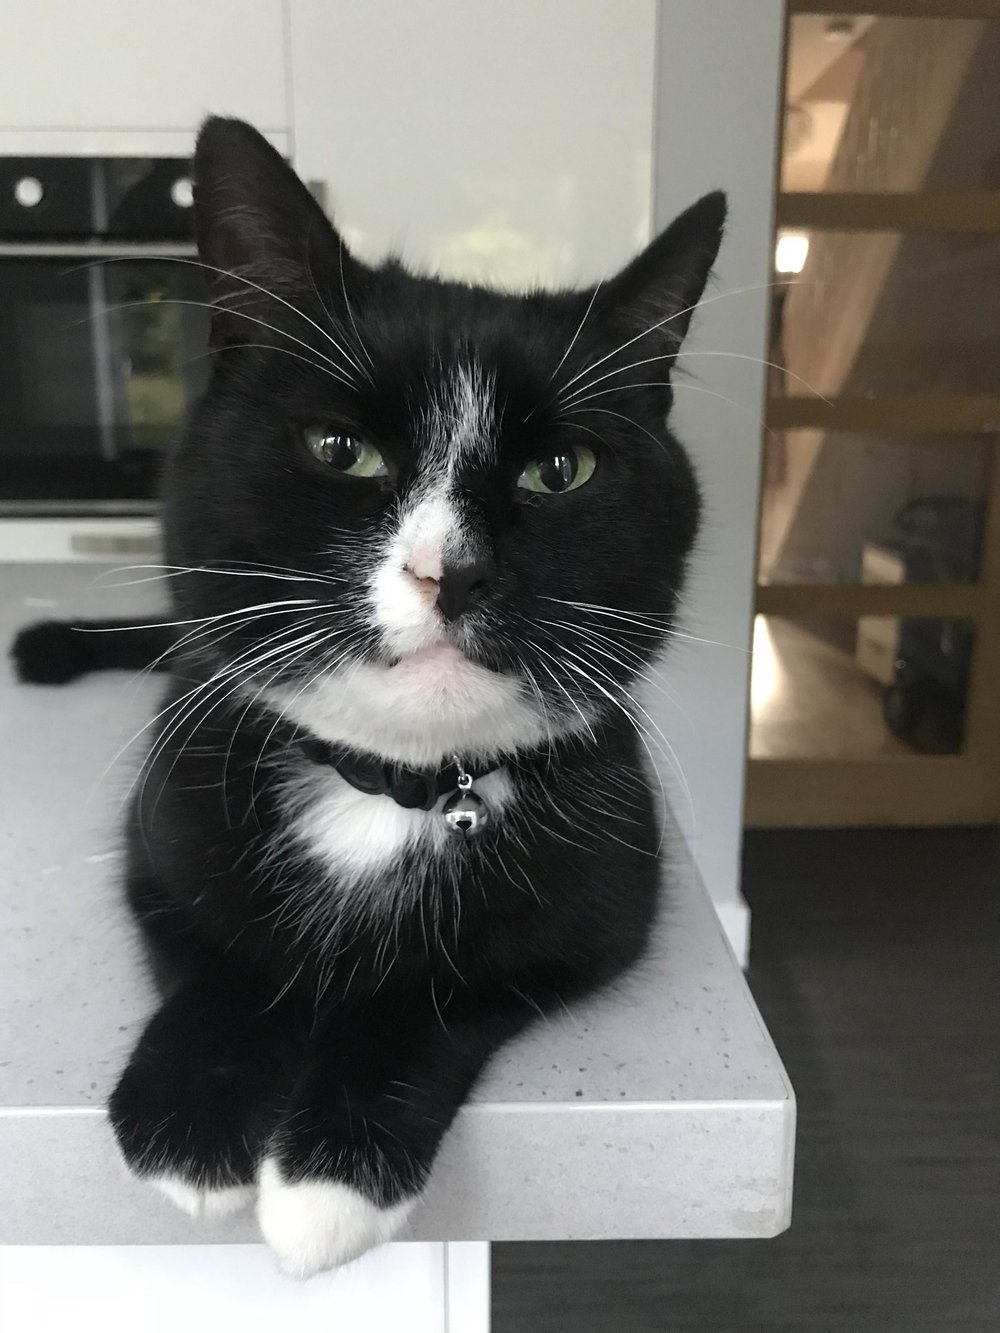 Frankie is a 7yr old handsome black and white boy who finds himself looking for a new home as his owner is moving to Australia.  We are told that Frankie is very loving and excellent with children. He doesn't mind other animals although he can be a bit bossy - he has been used to living with two small dogs so would most likely be fine with a well behaved and calm, cat friendly dog in a new home.  He is a bit of a mouser and likes to bring you the odd present, but other than that hes a nice boy who really just wants somewhere quiet and relaxed to call home.  Frankie is neutered and microchipped but the owner doesnt have any of the paperwork - he is not up to date with his vaccinations